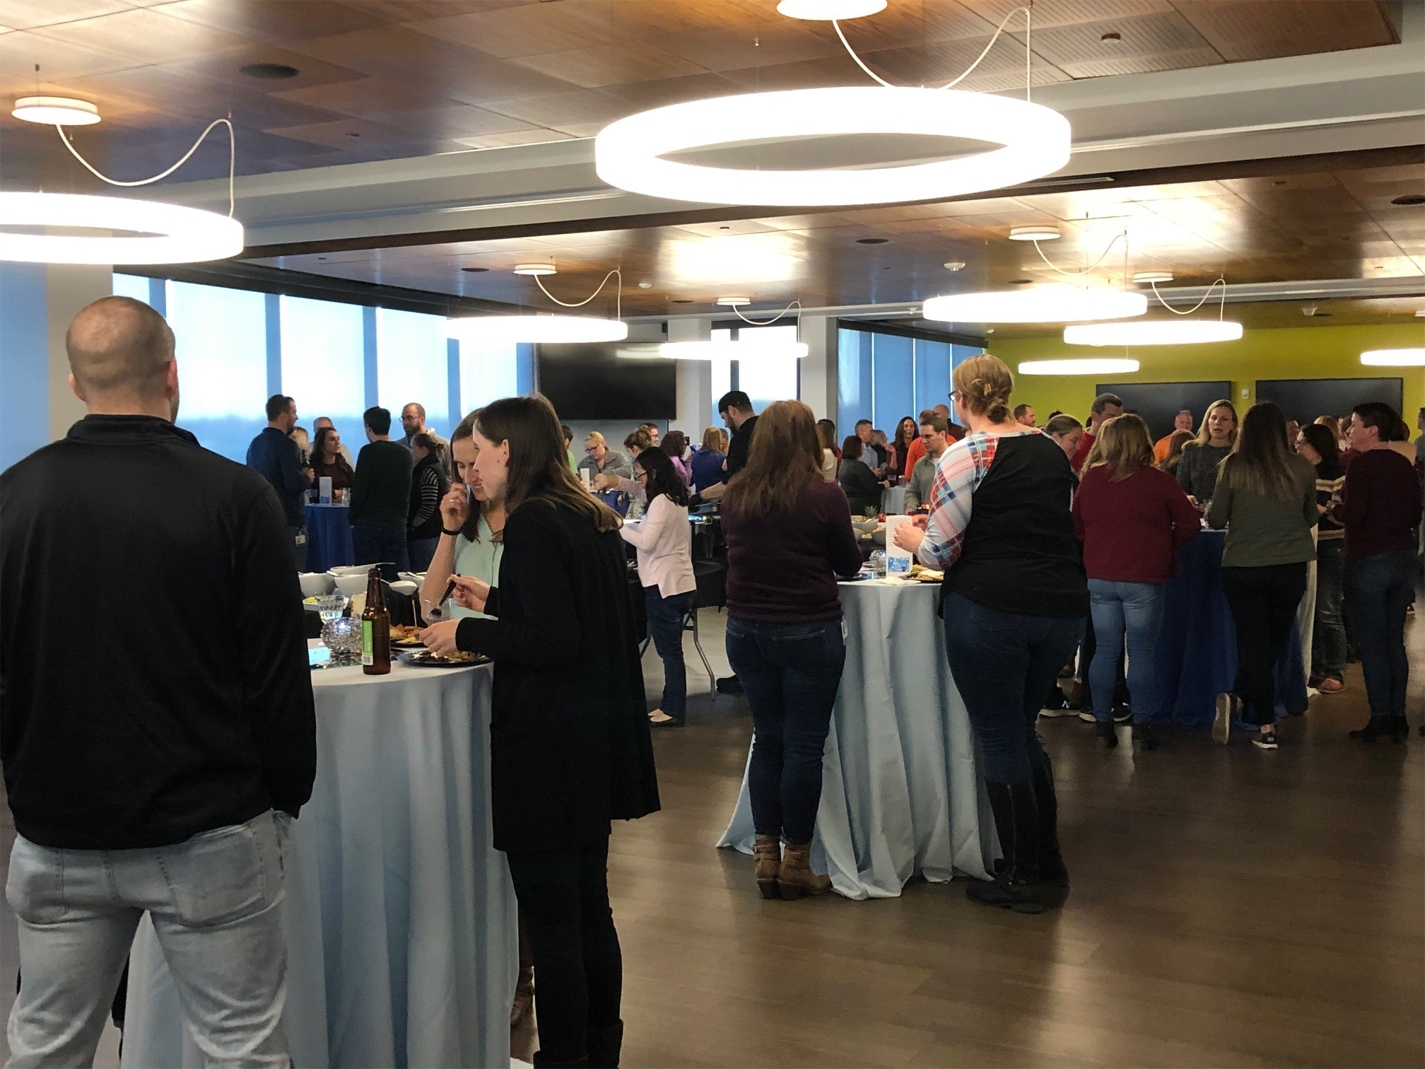 Associates gather to celebrate the holiday season in their brand new cafeteria that can be used as meeting space as well as for larger company sponsored events.